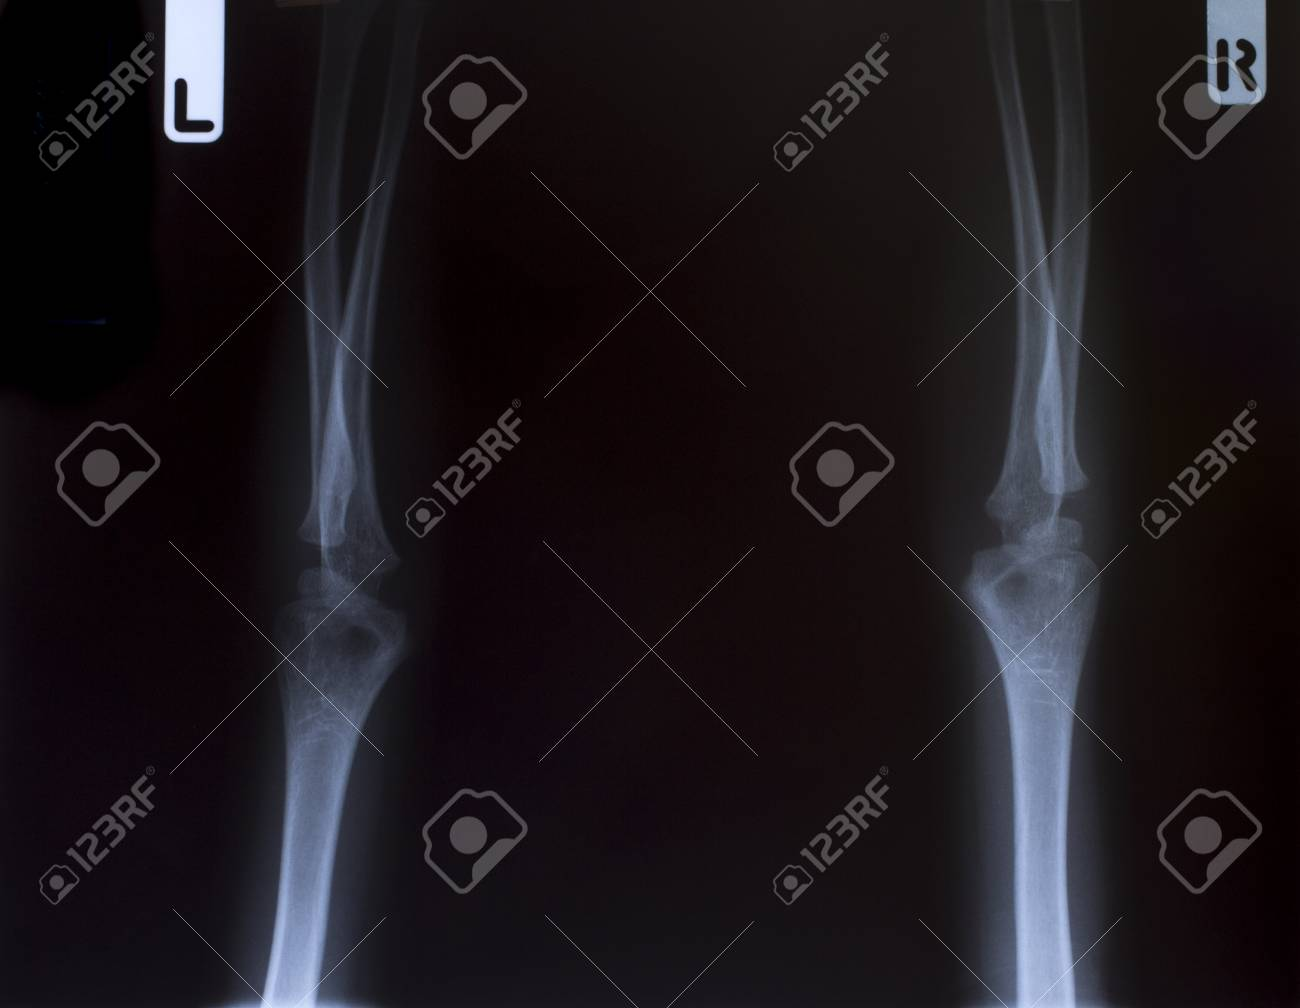 X-Ray Image Of Human Chest for a medical diagnosis Stock Photo - 26483228